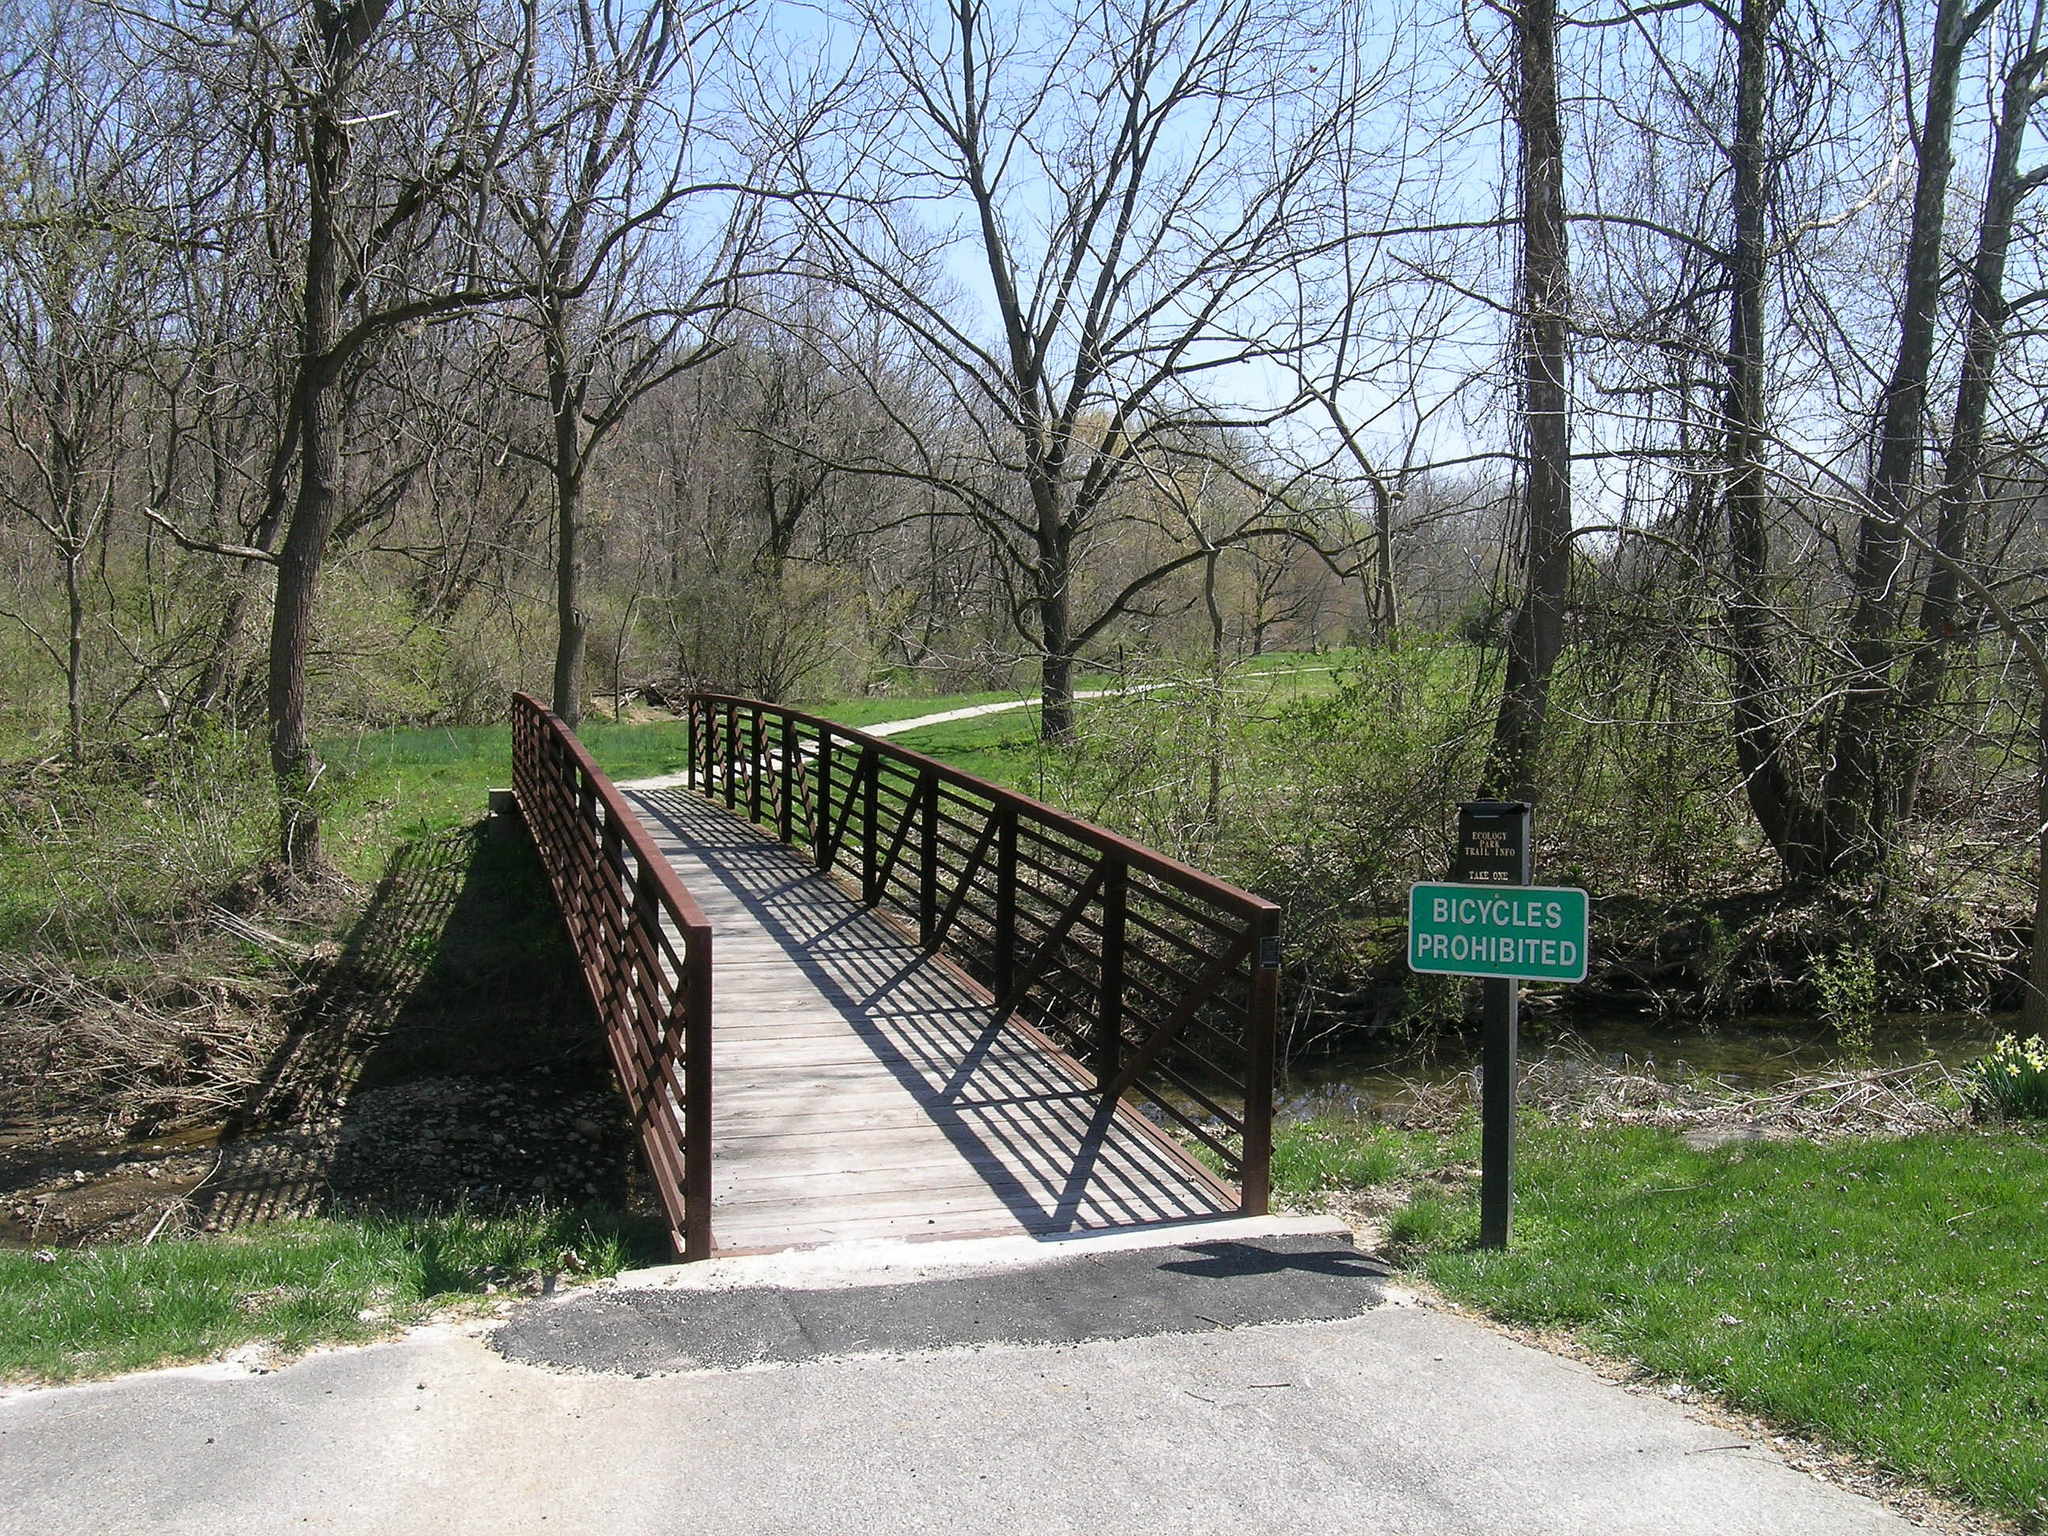 New Chester Valley Trail Brochure Marks Trail's Reopening